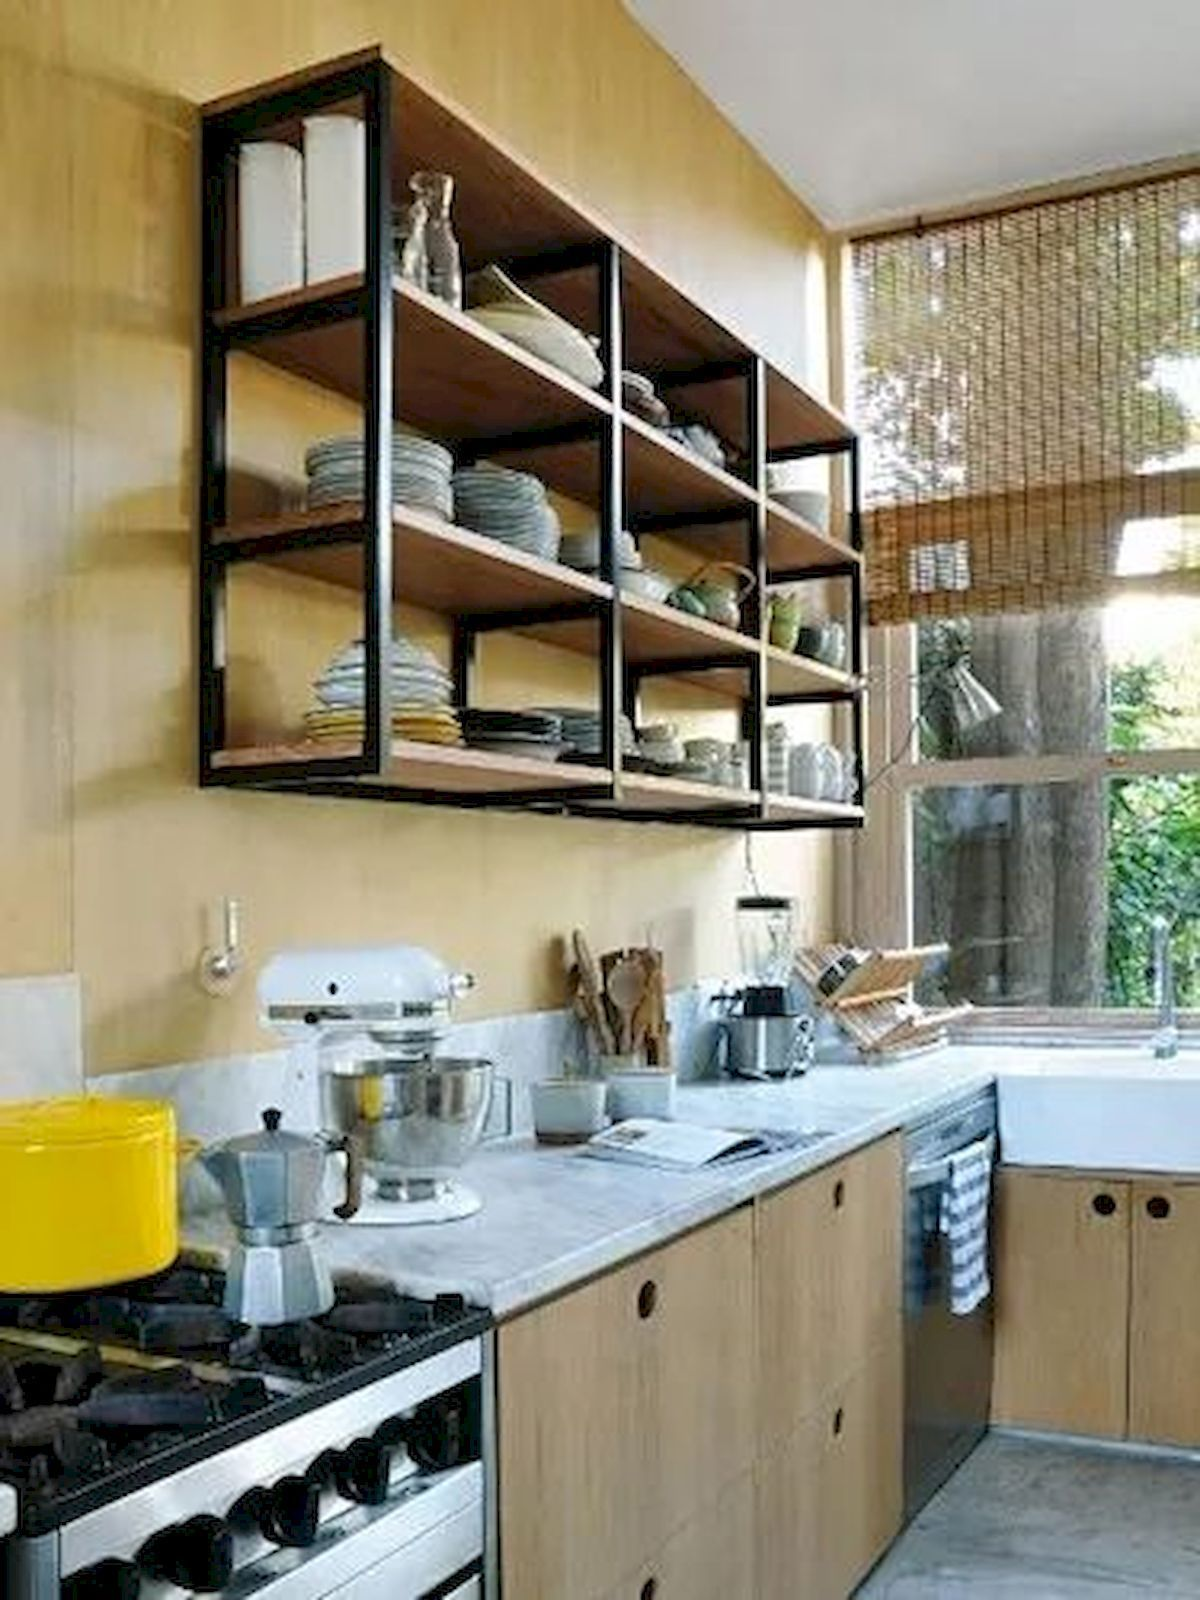 Cool 20 Kitchen Industrial Design Ideas Le That Allow You To Create Your Own Web Design From Th In 2020 Industrial Kitchen Design Kitchen Design Design Your Kitchen